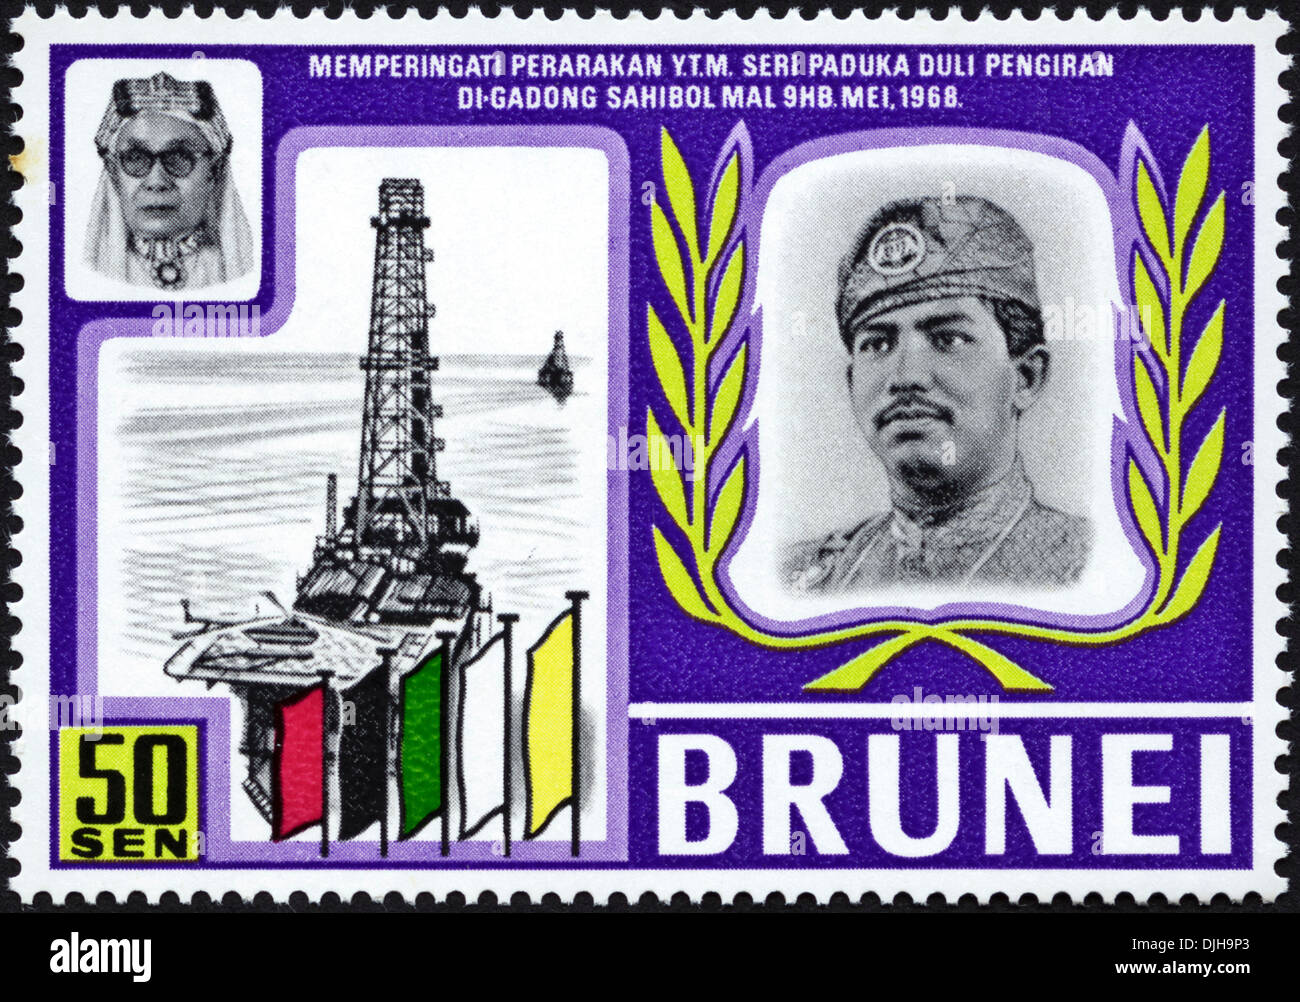 postage stamp Brunei 50 Sen featuring oil drilling platform issued 1969 - Stock Image